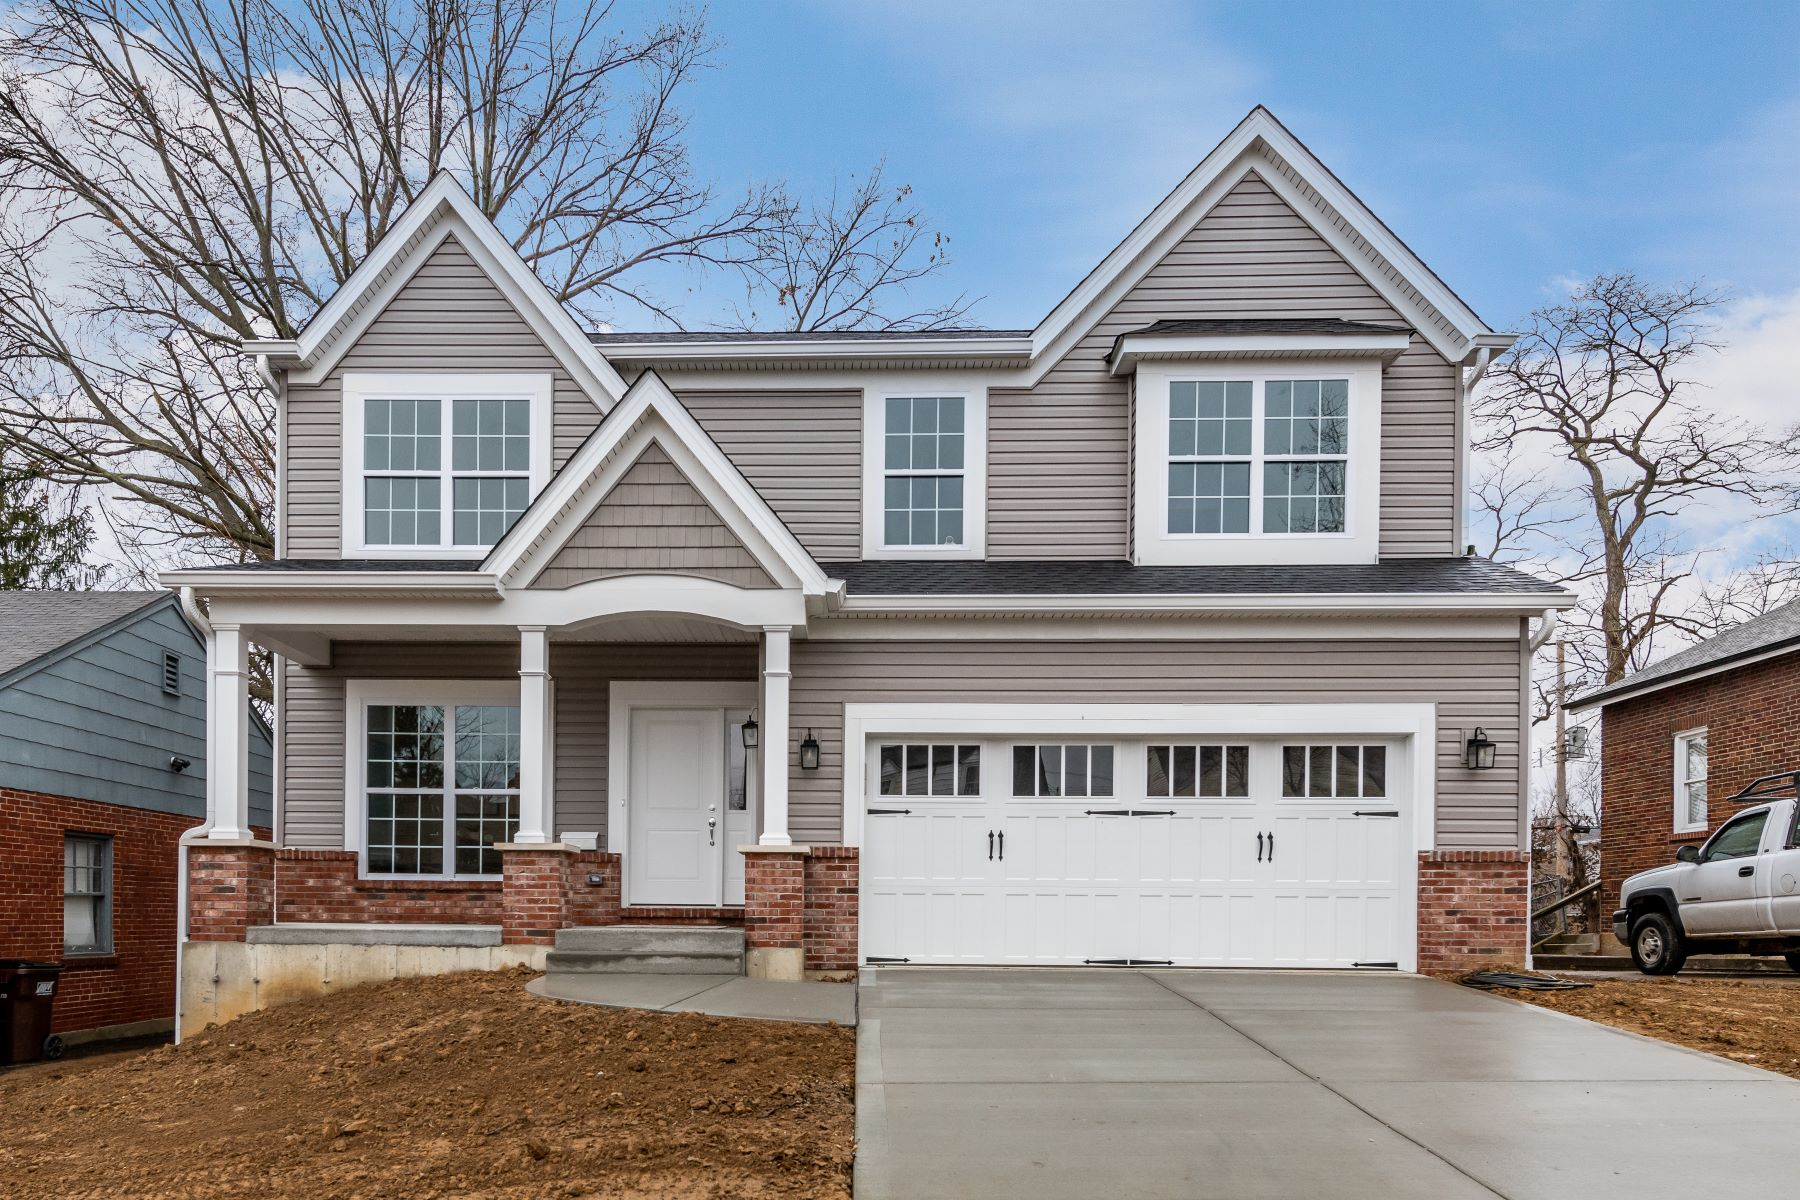 Single Family Homes for Sale at Beautiful New Construction in Olivette 1111 Collingwood Drive Olivette, Missouri 63132 United States